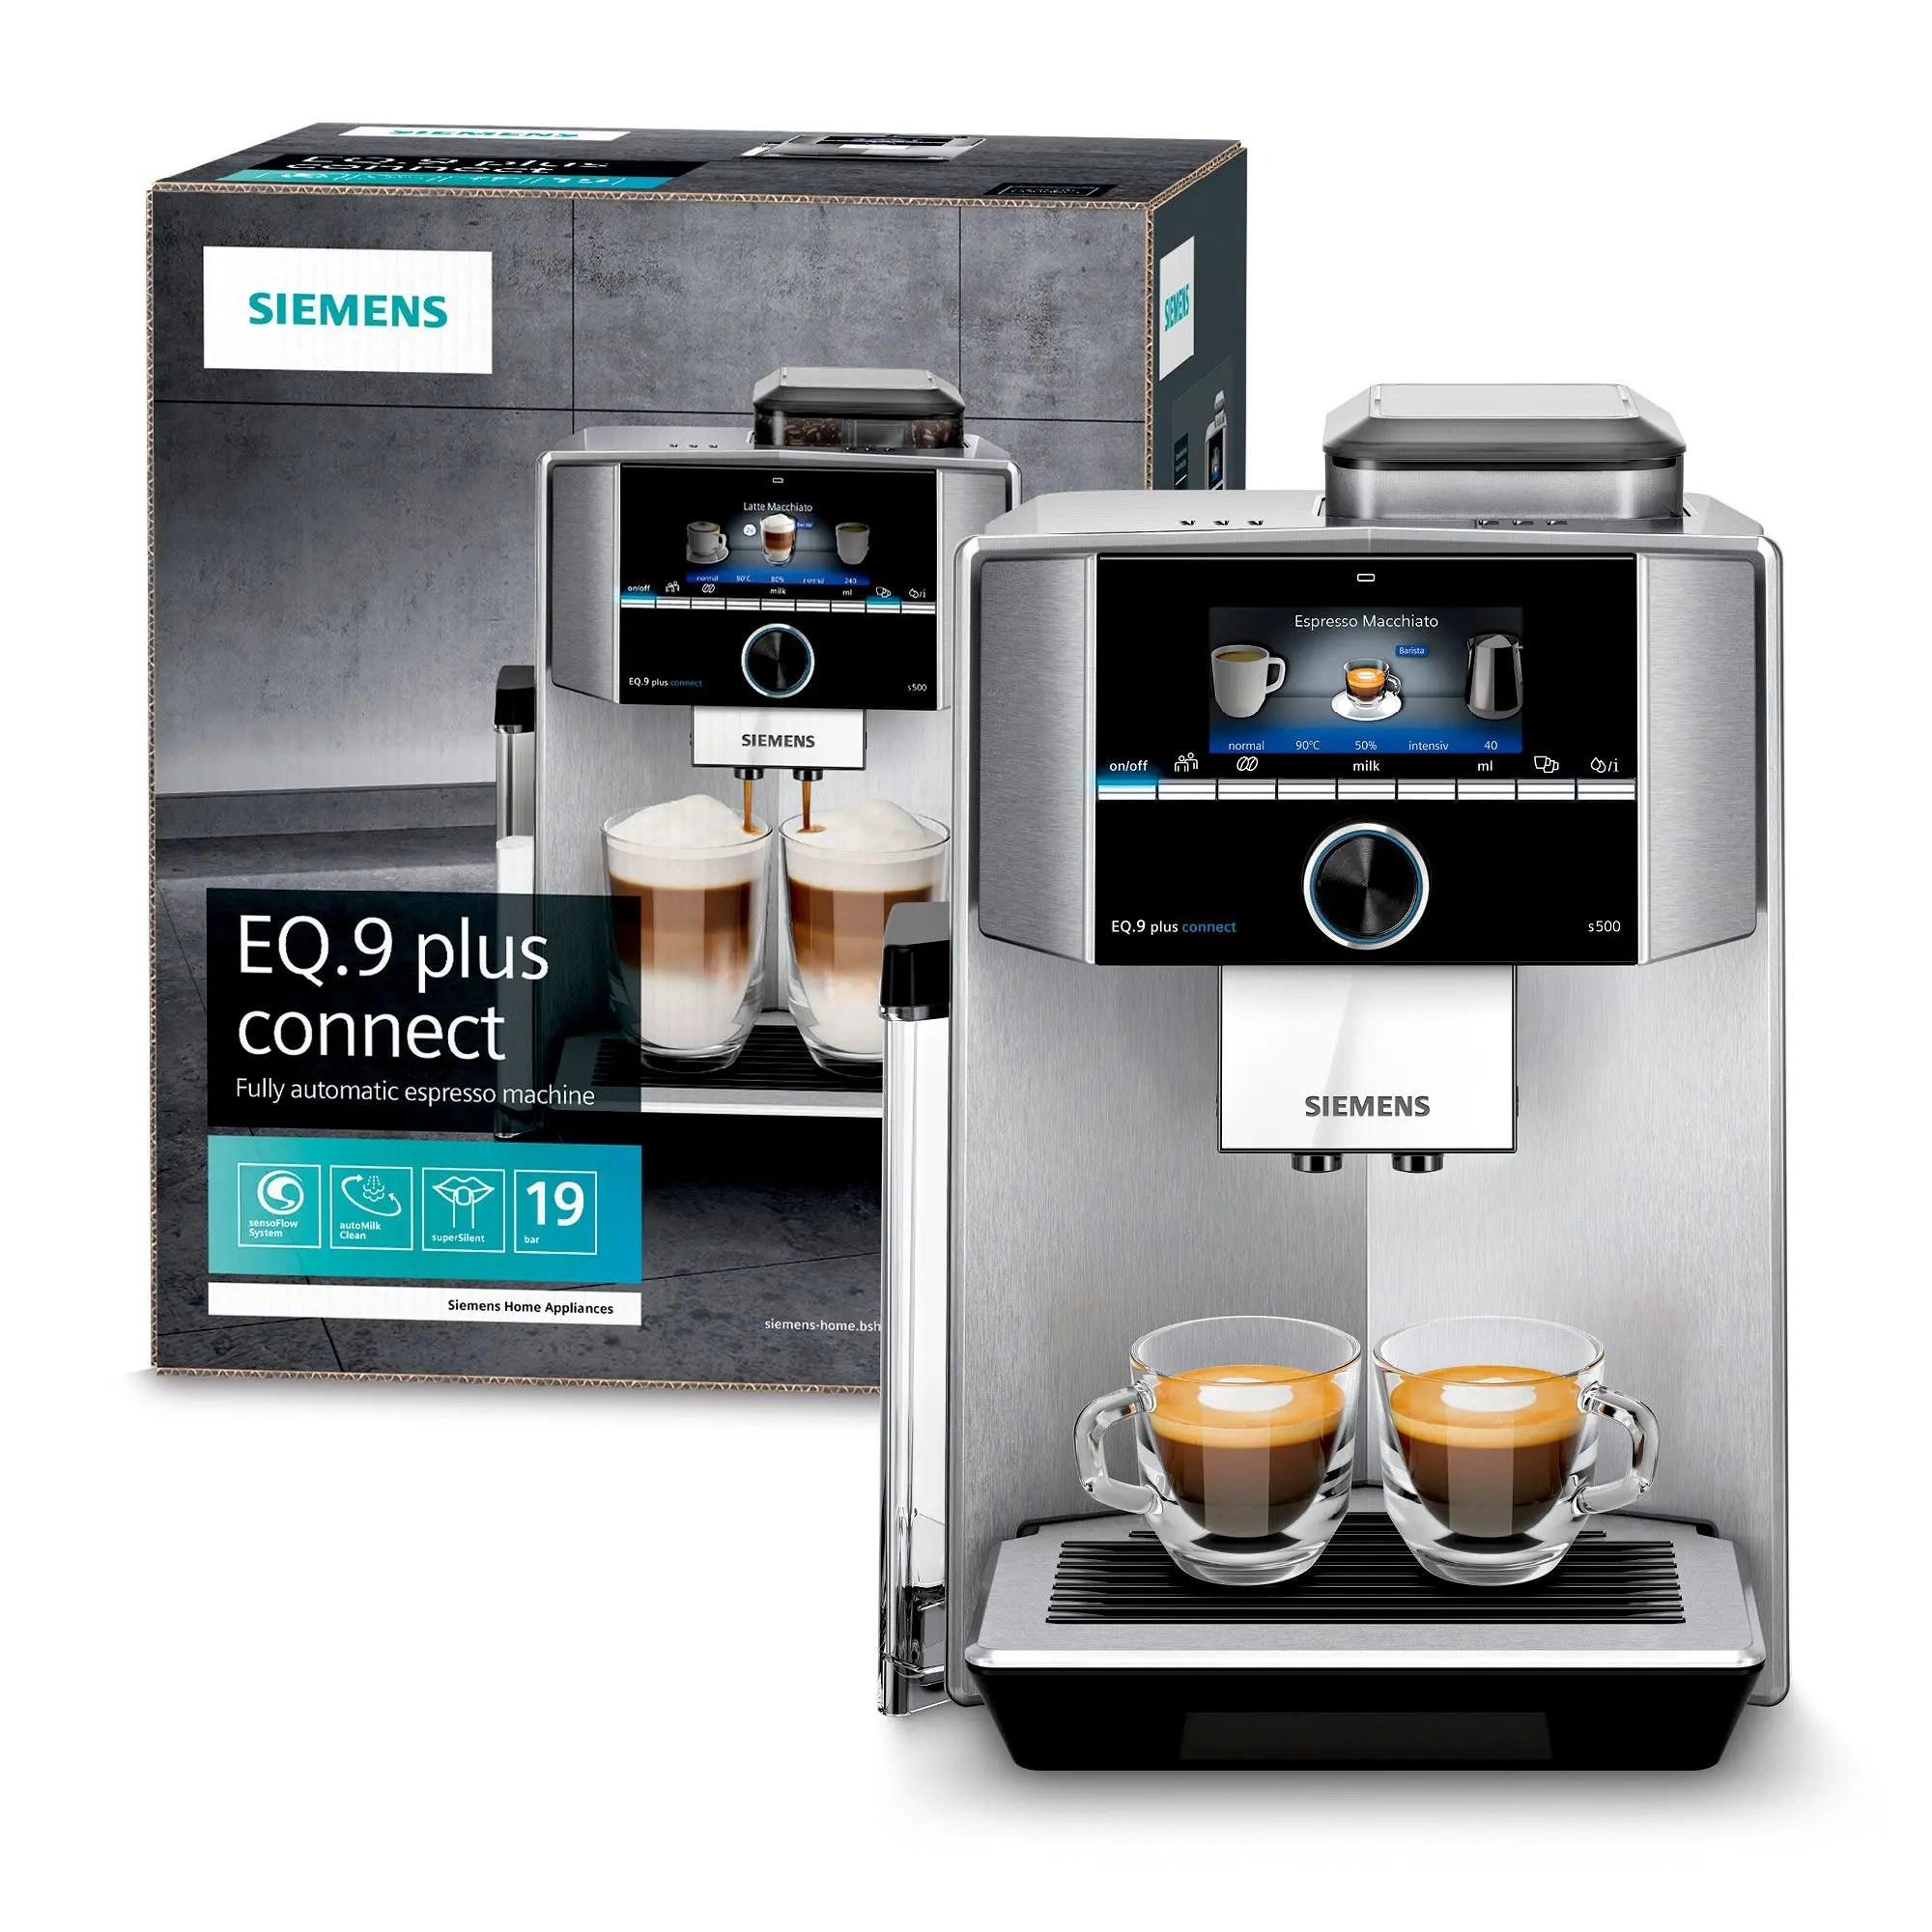 Internationale Kaffeespezialitäten Siemens Eq 9 Plus Connect S500 Ti9555x1de Kaffeevollautomat 19bar